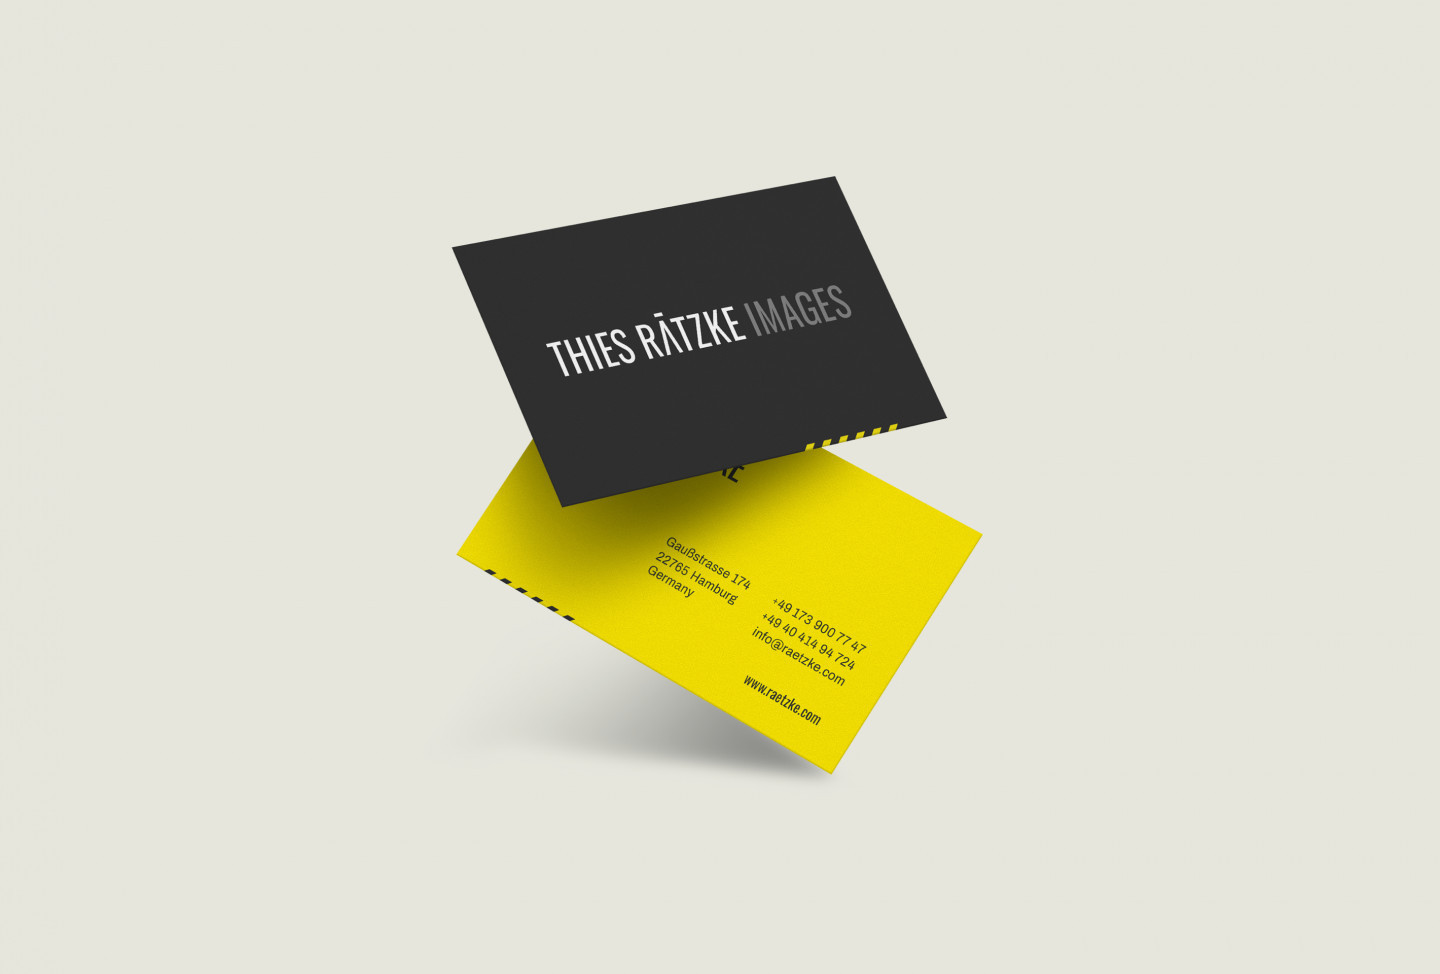 Thies Rätzke Images business card